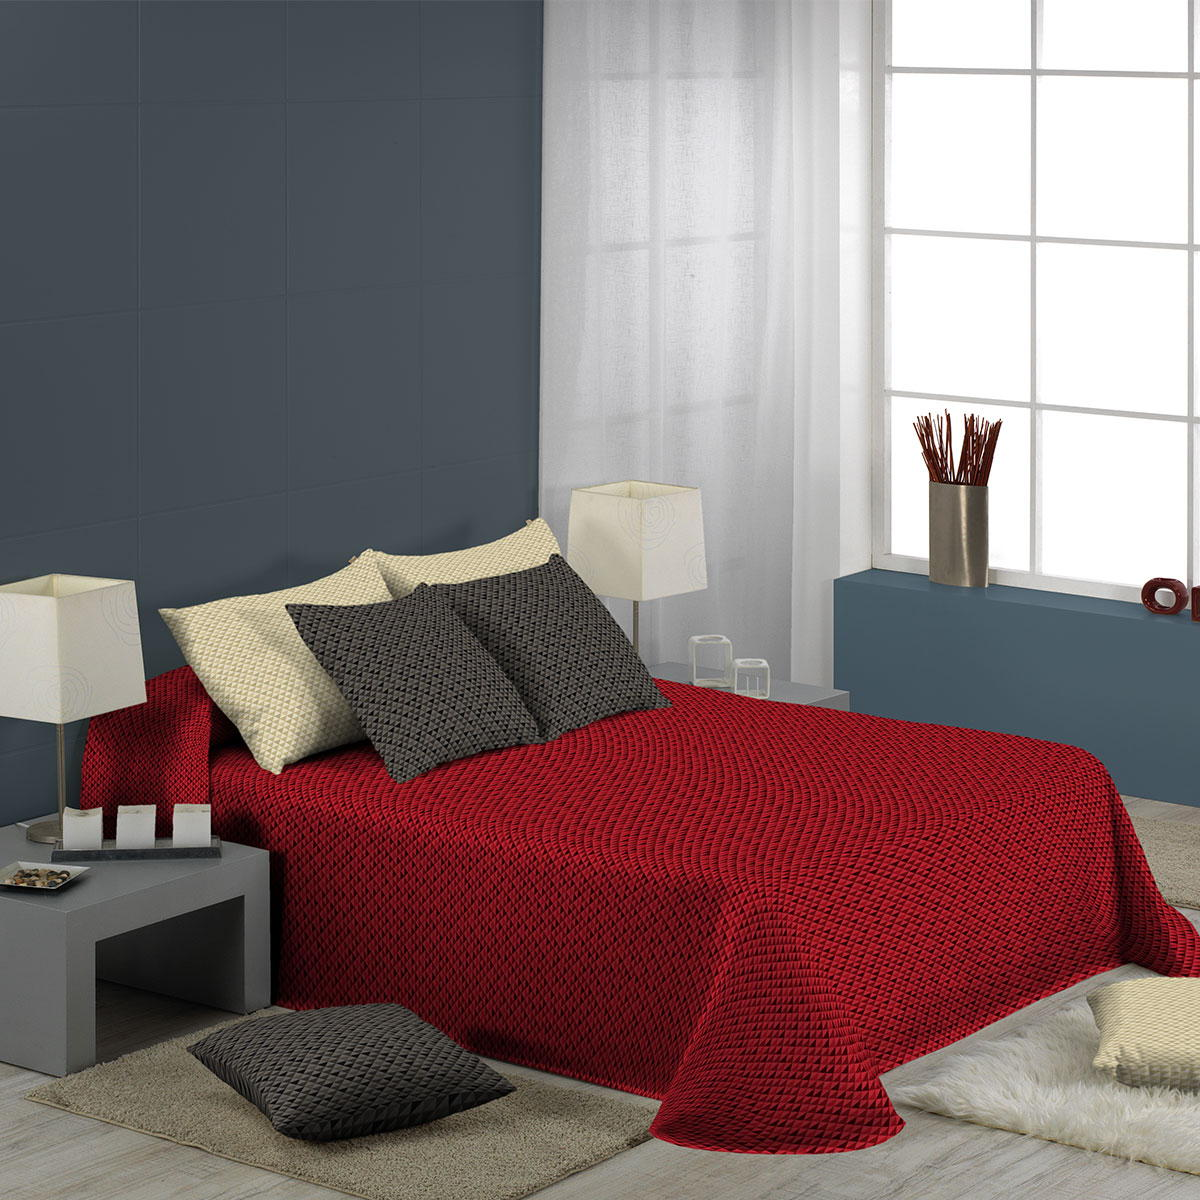 jet de lit nil effet boutis standard textile. Black Bedroom Furniture Sets. Home Design Ideas